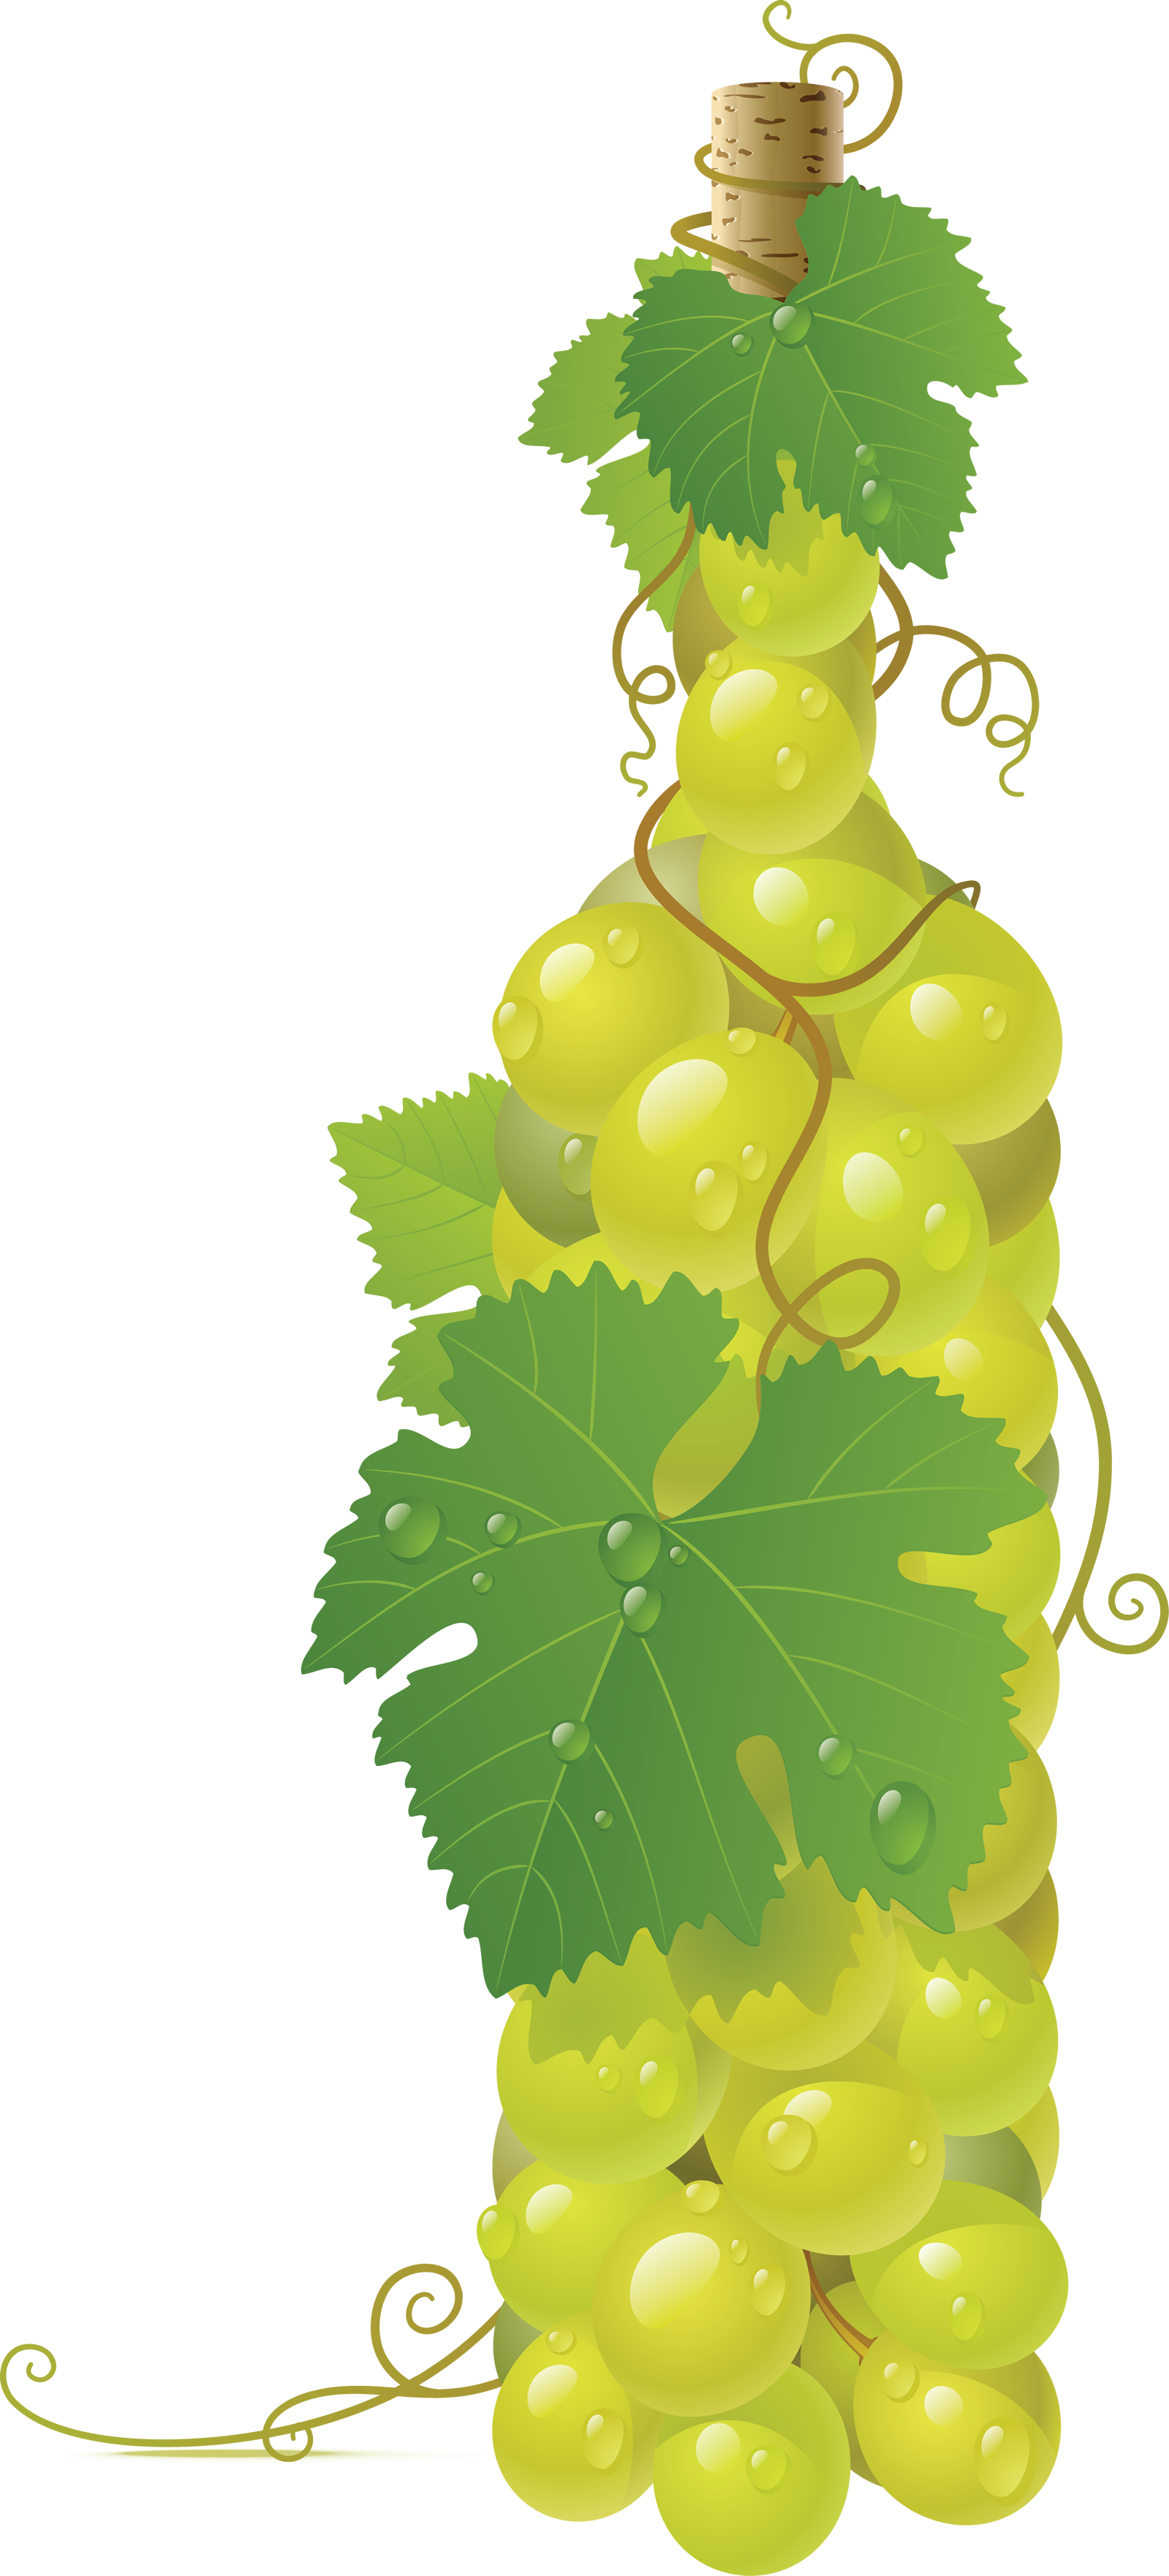 Png image free picture. Grapes clipart wine grape